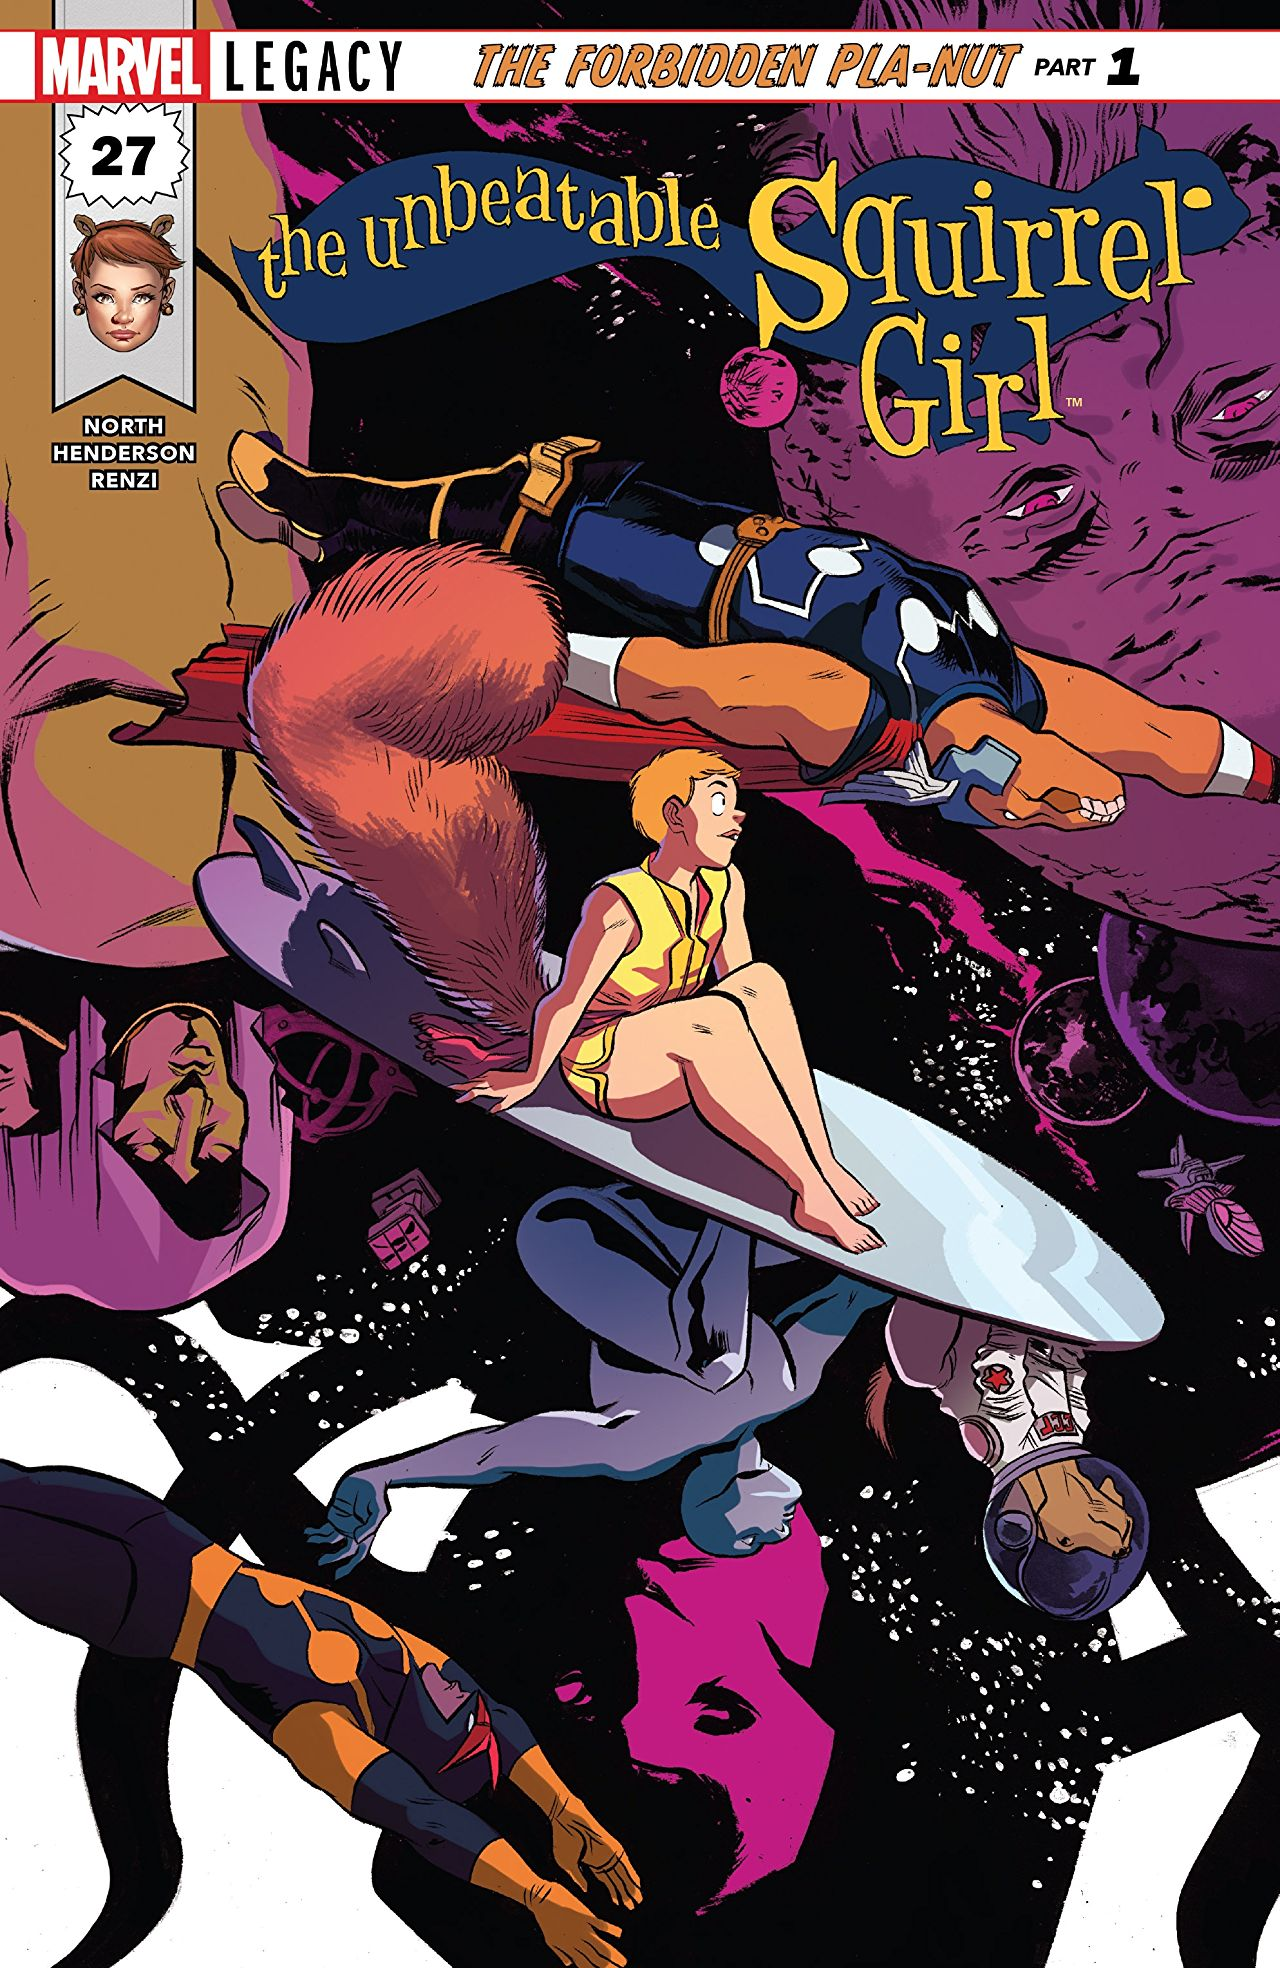 The Unbeatable Squirrel Girl #27 Review